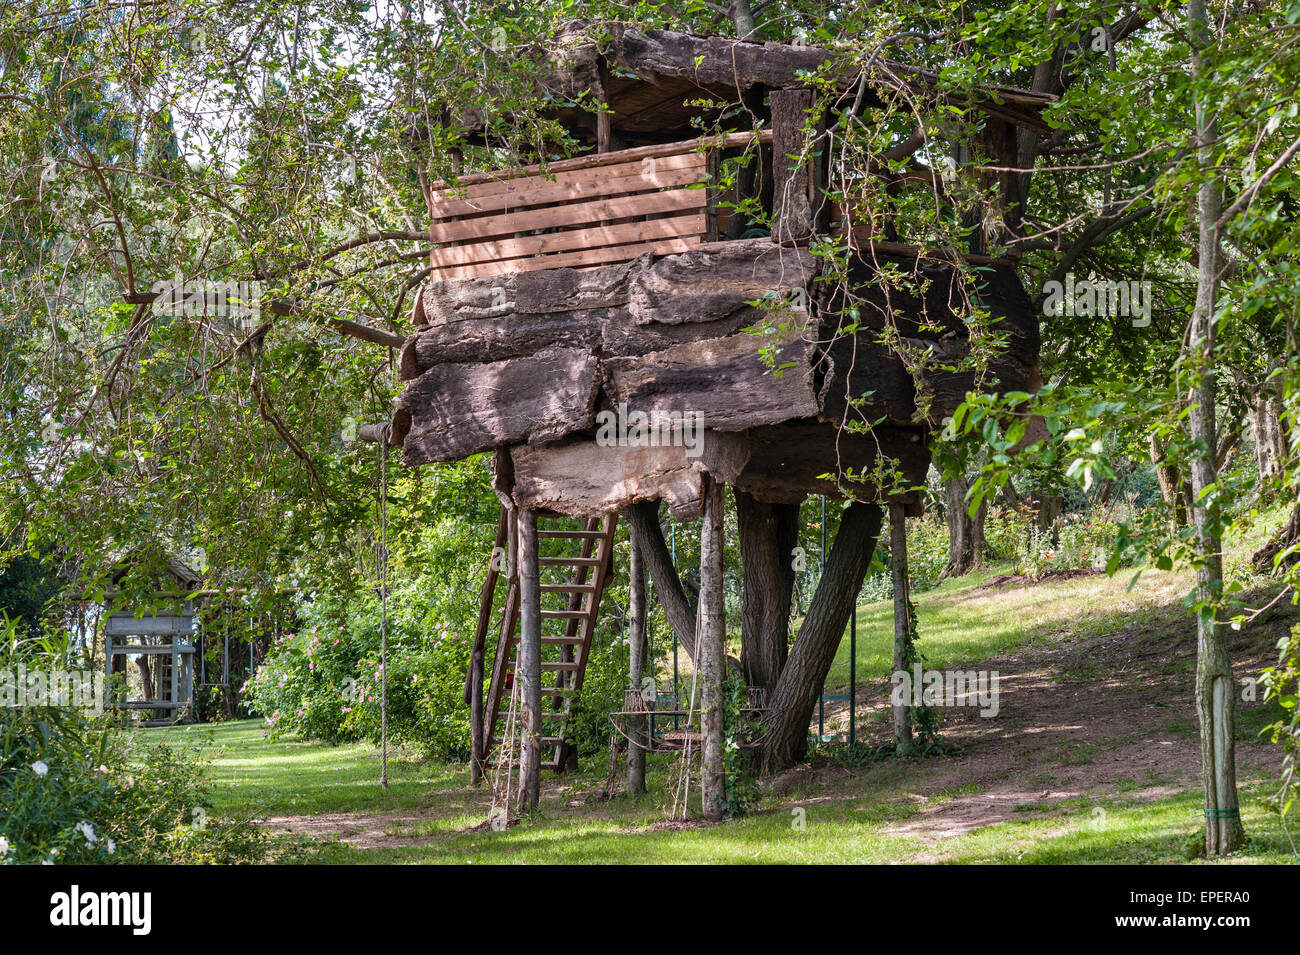 Italy A Garden Tree House Built For Children Stock Photo Alamy